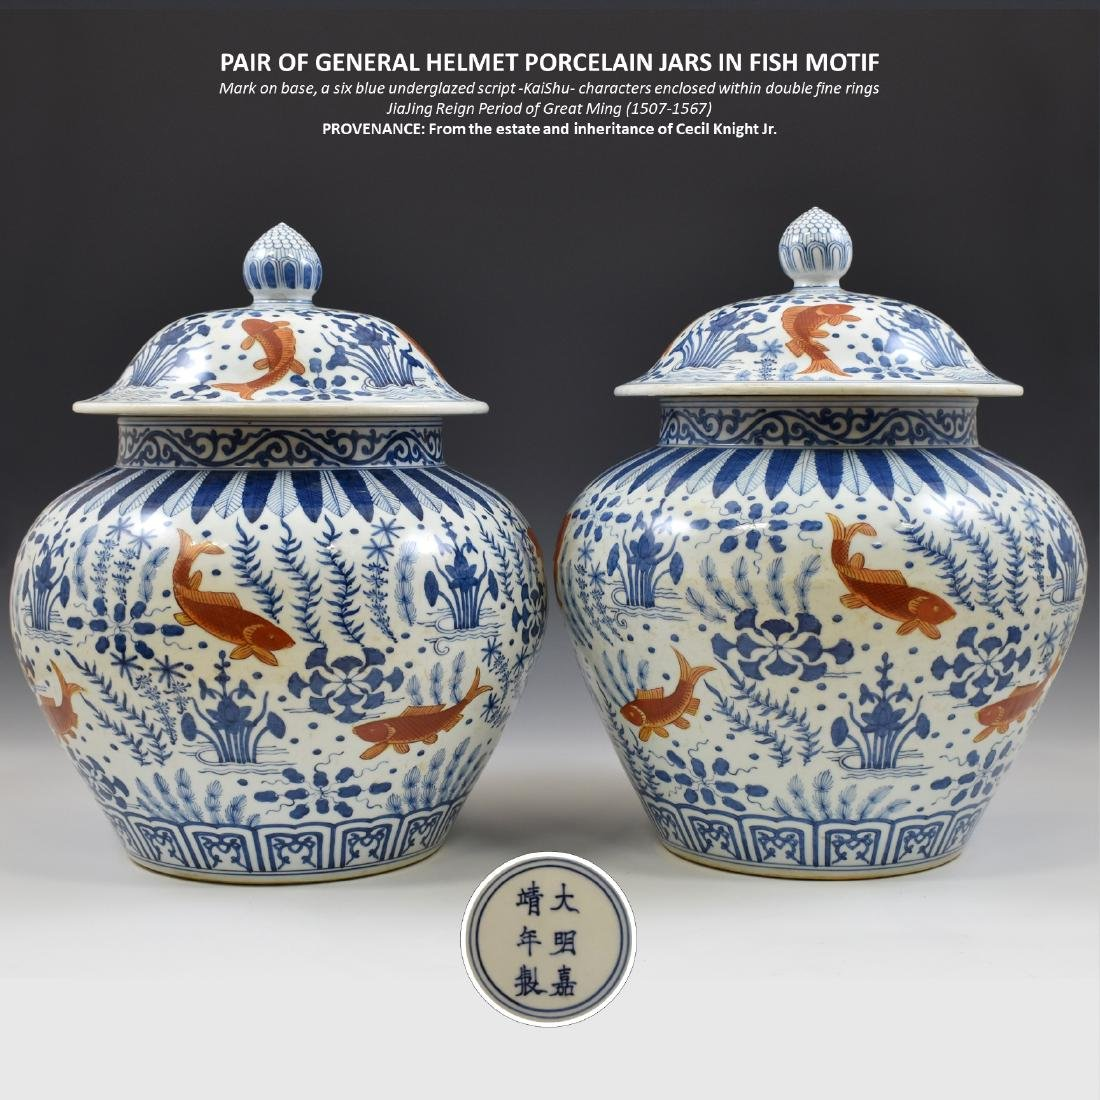 PAIR OF MING GENERAL HELMET JARS IN FISH MOTIF